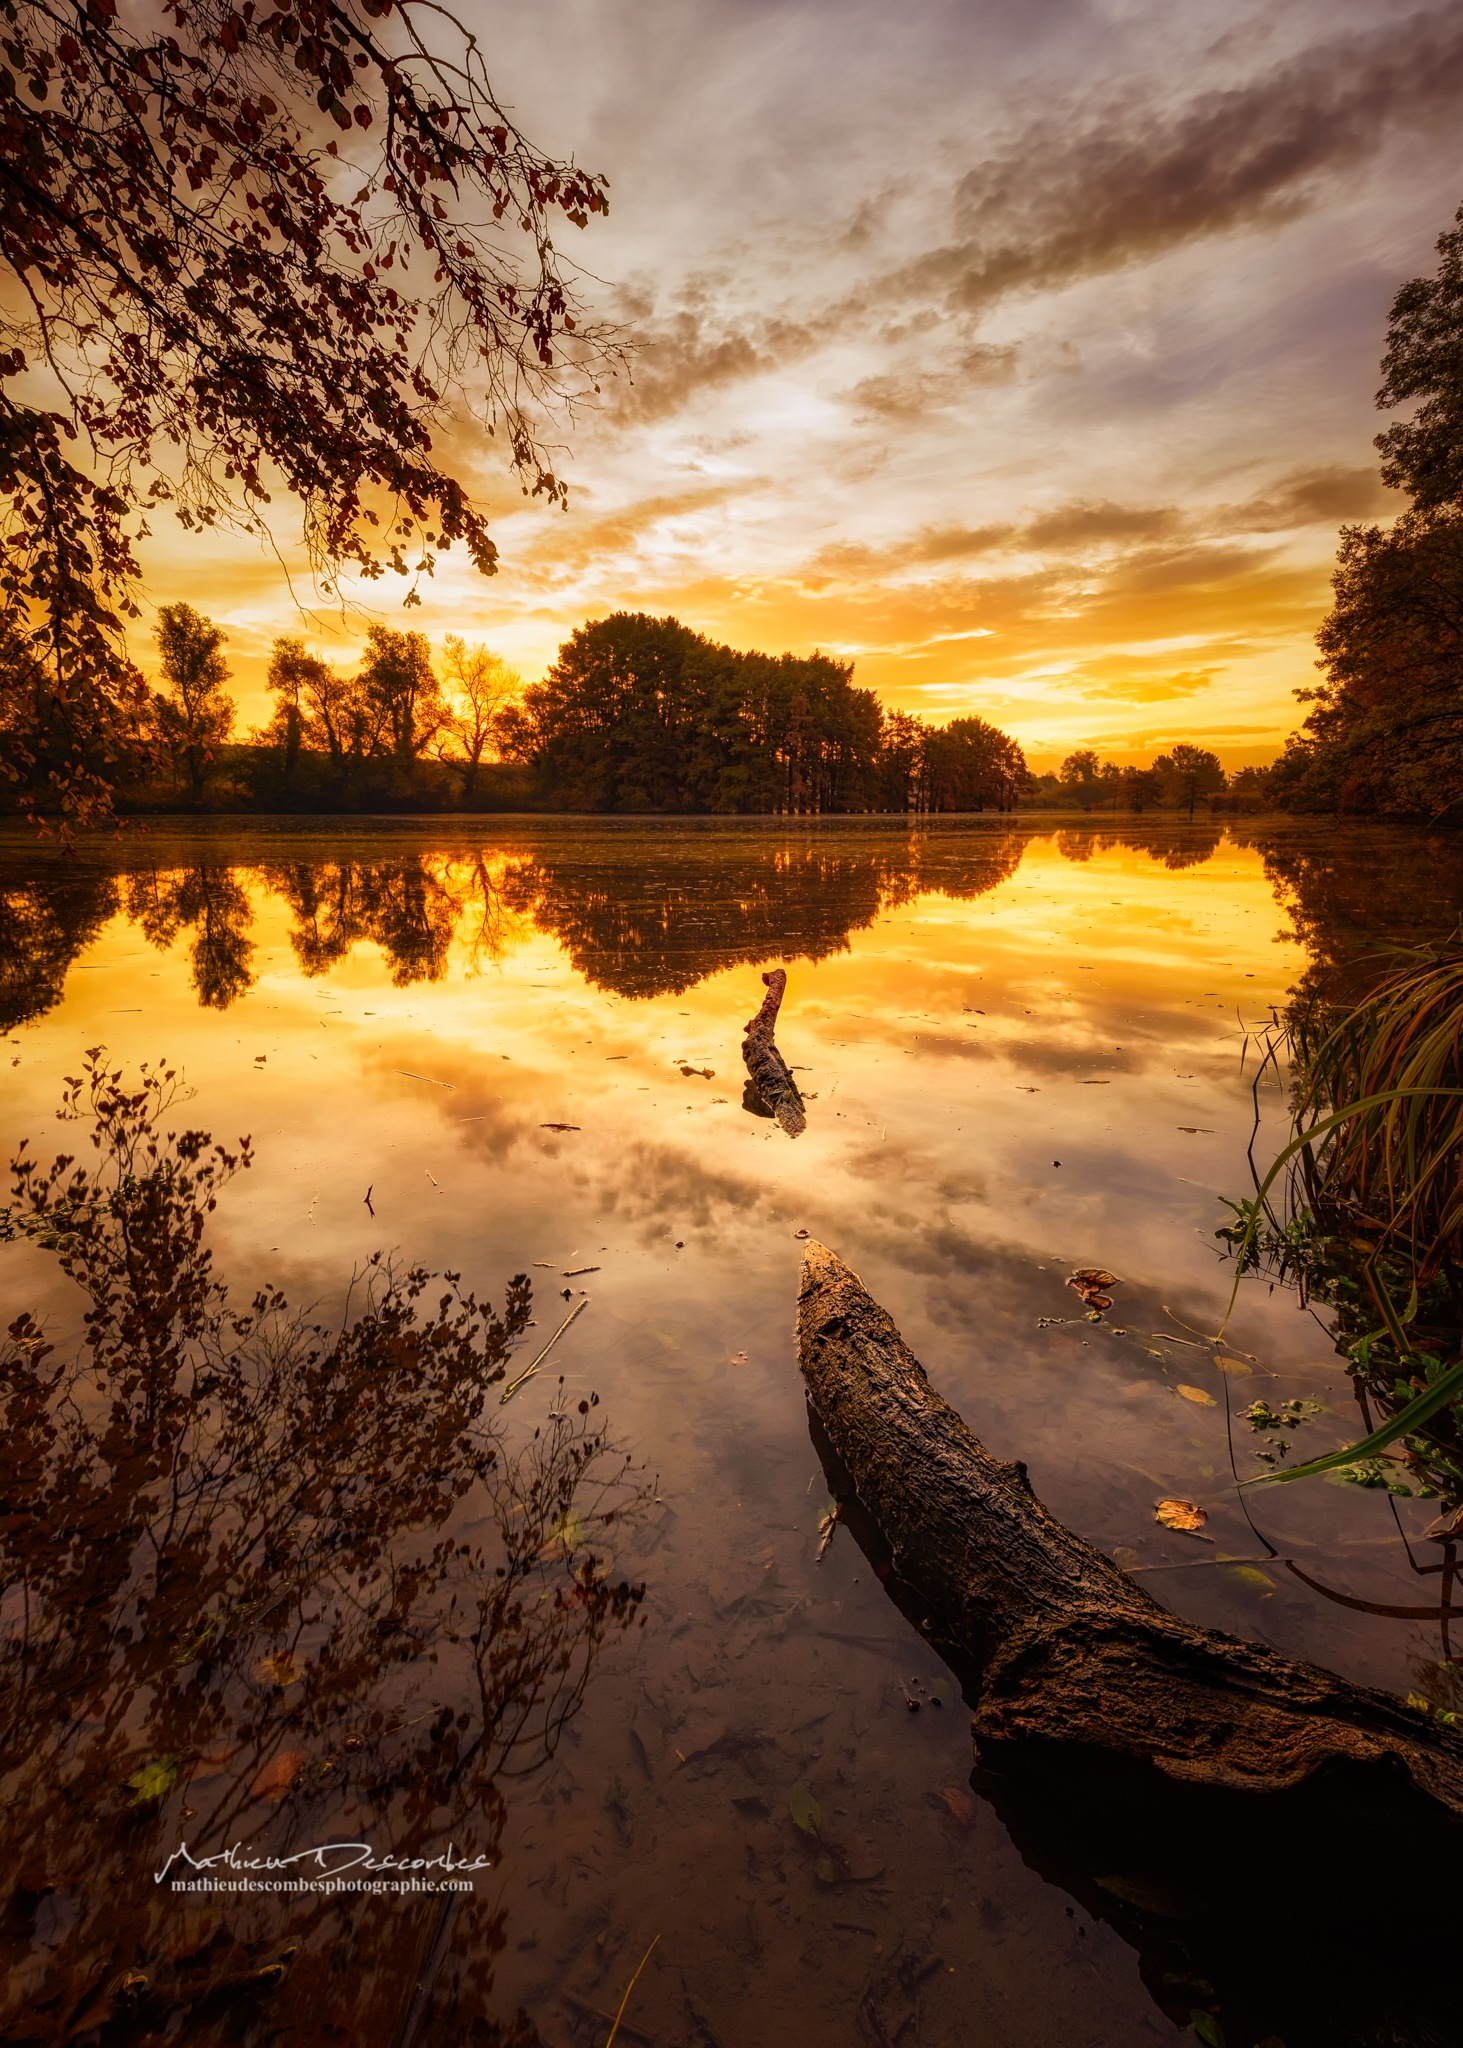 Sunrise reflection by Mathieu Descombes Photographie